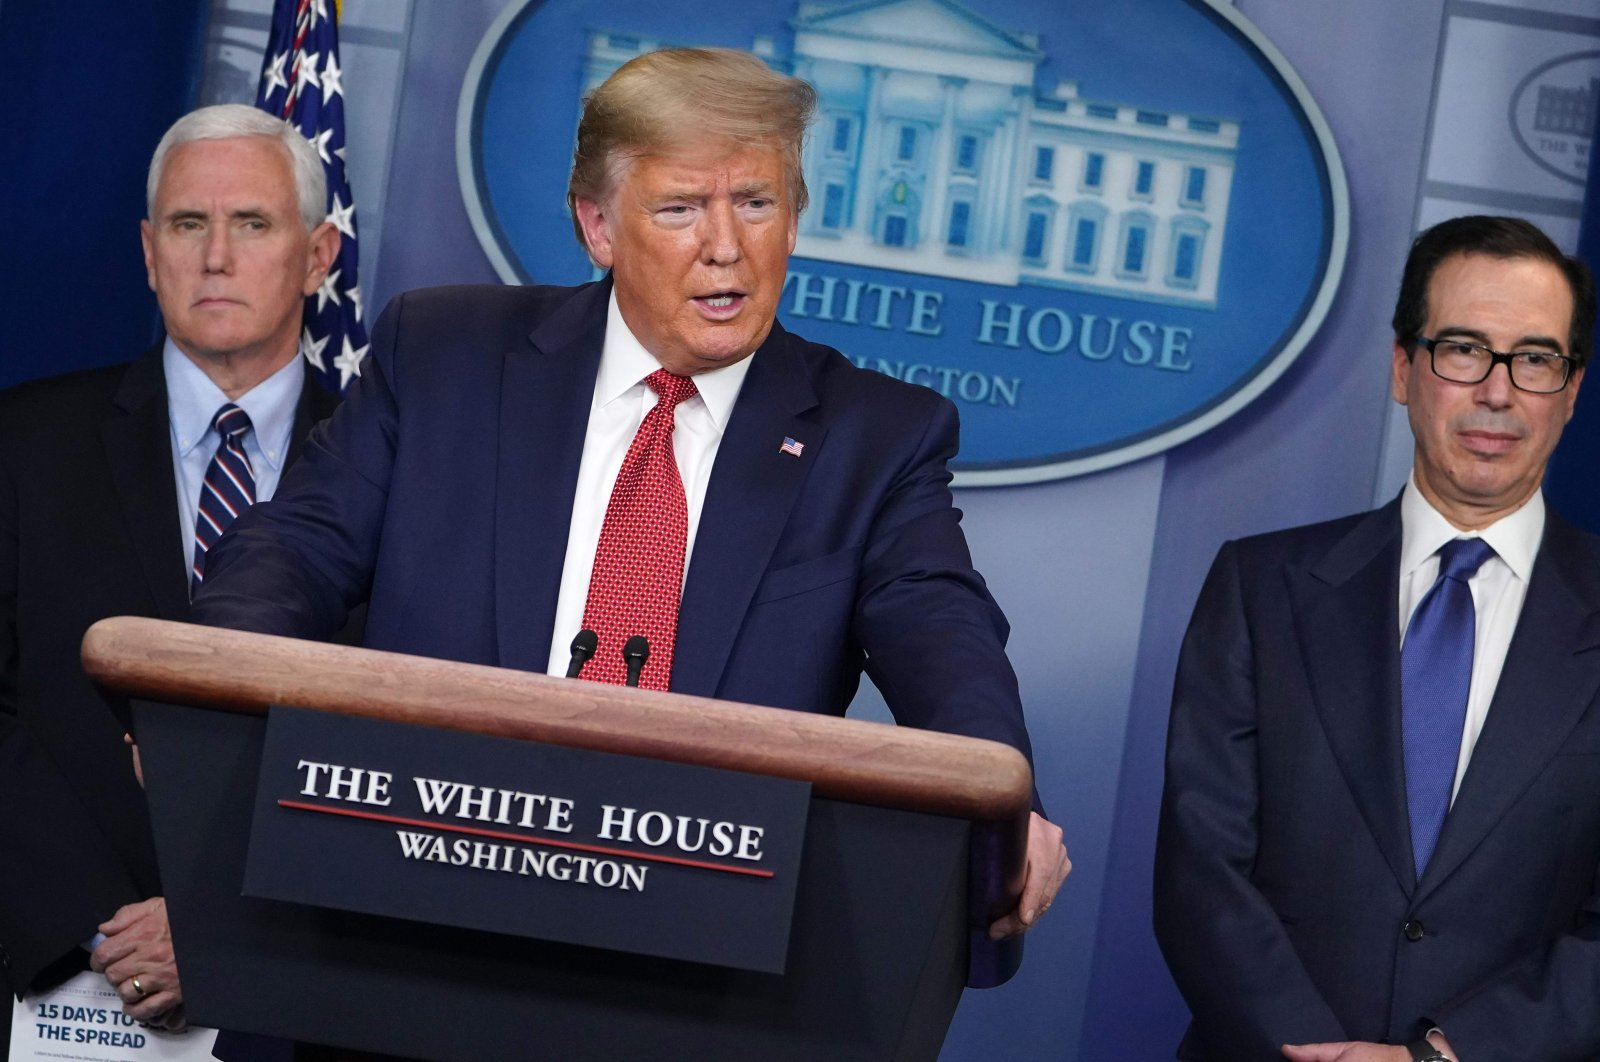 US President Donald Trump, flanked by US Secretary of the Treasury Steven Mnuchin (R) and US Vice President Mike Pence, speaks during the daily briefing on the novel coronavirus, COVID-19, in the Brady Briefing Room at the White House on March 25, 2020, in Washington, DC. (AFP Photo)